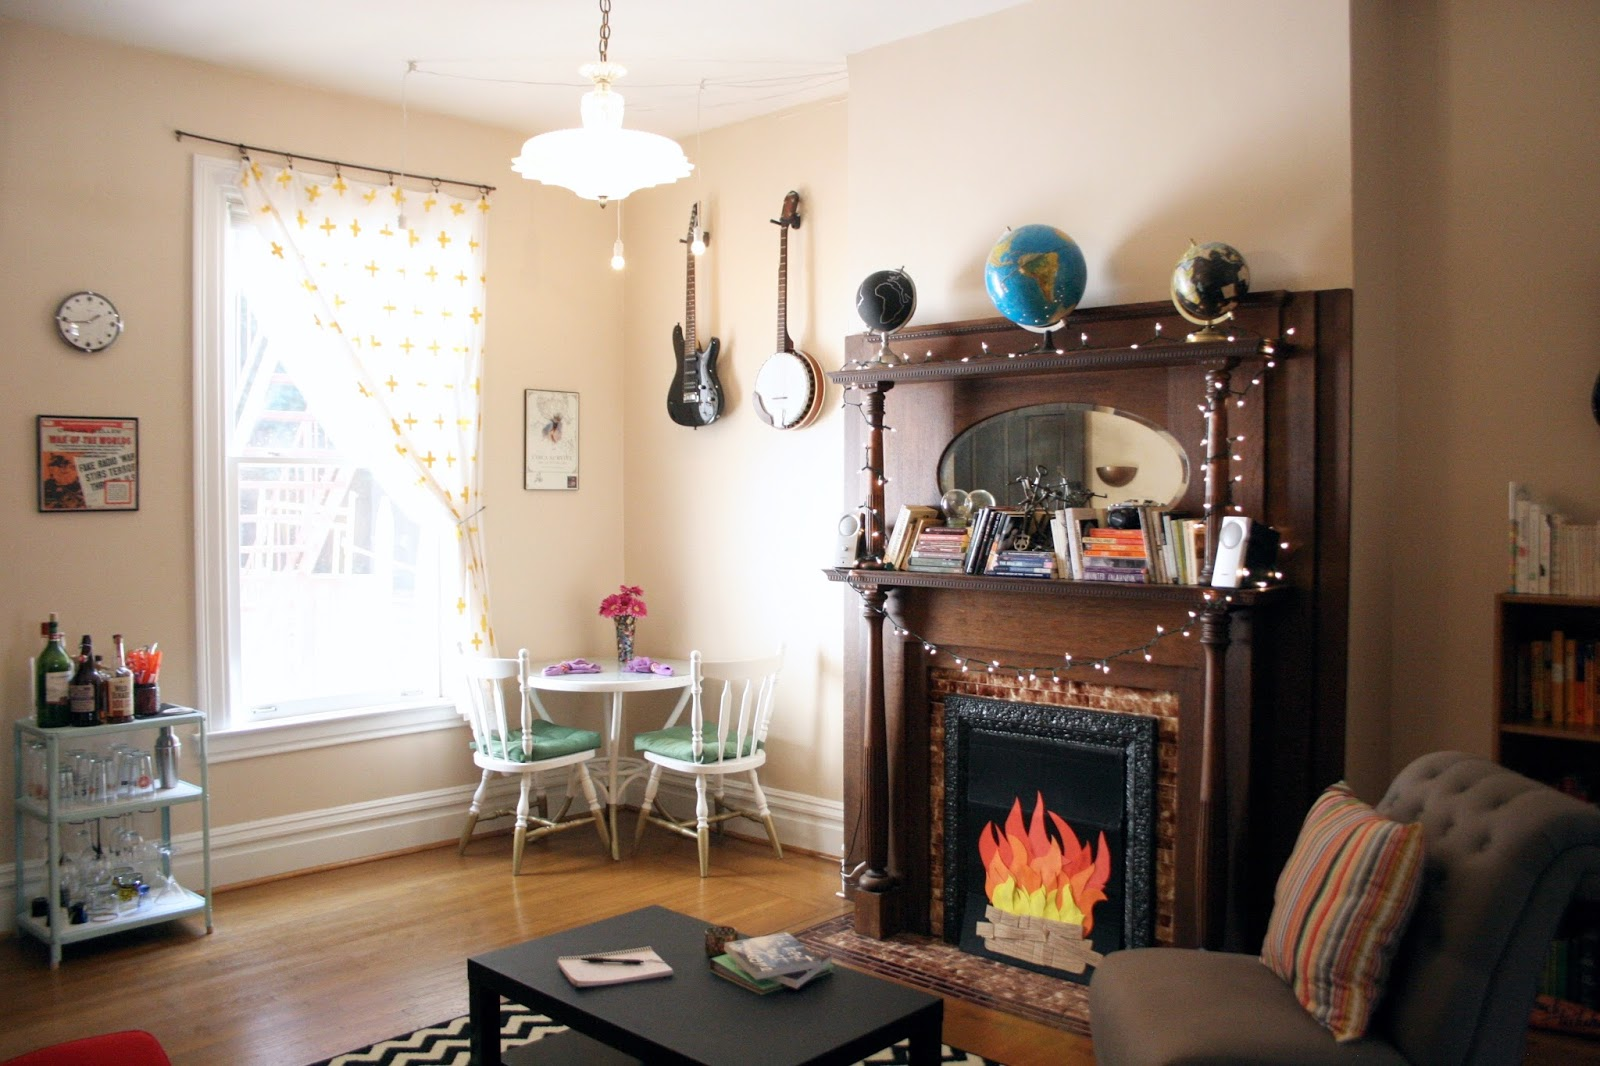 dining room tour the surznick common room finally another room tour it s been nearly a year since we shared our office makeover and today we re at long last here to share with you our dining room